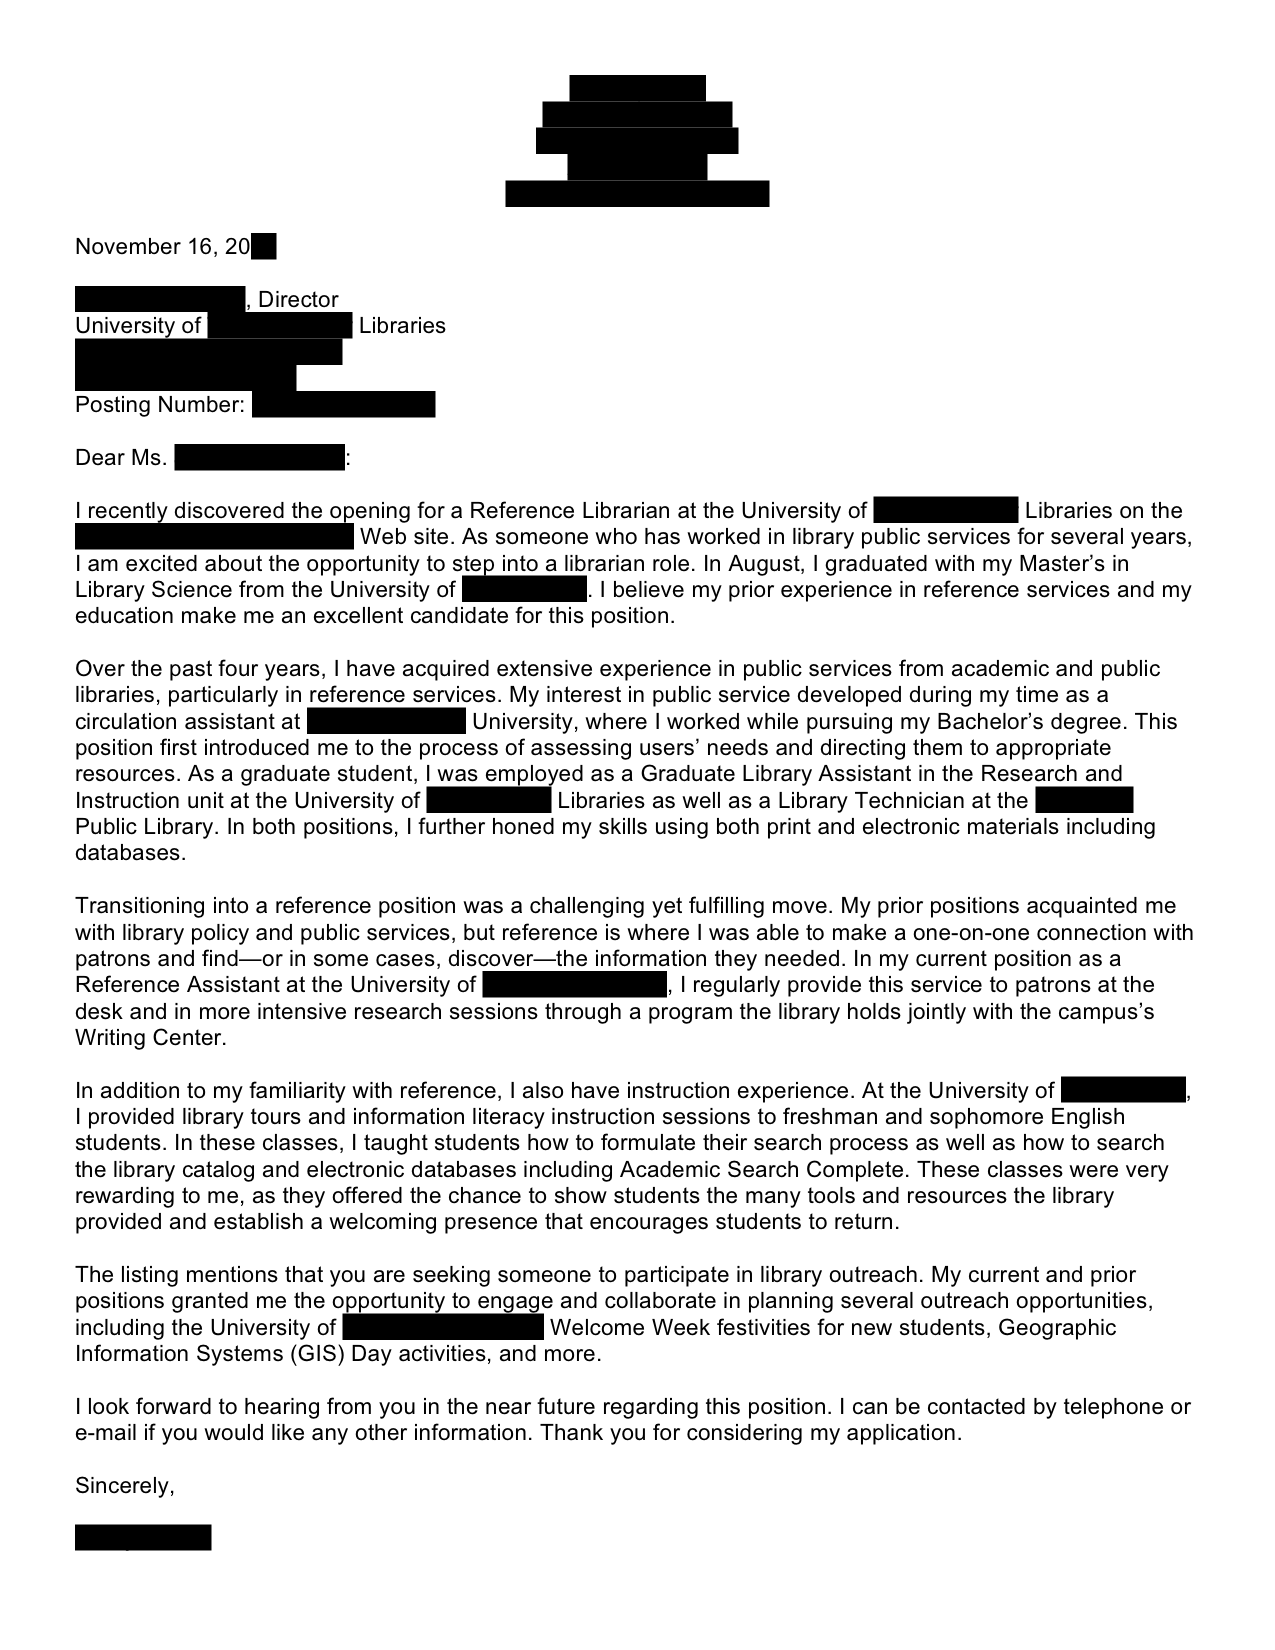 share this cover letter - Picture Of A Cover Letter